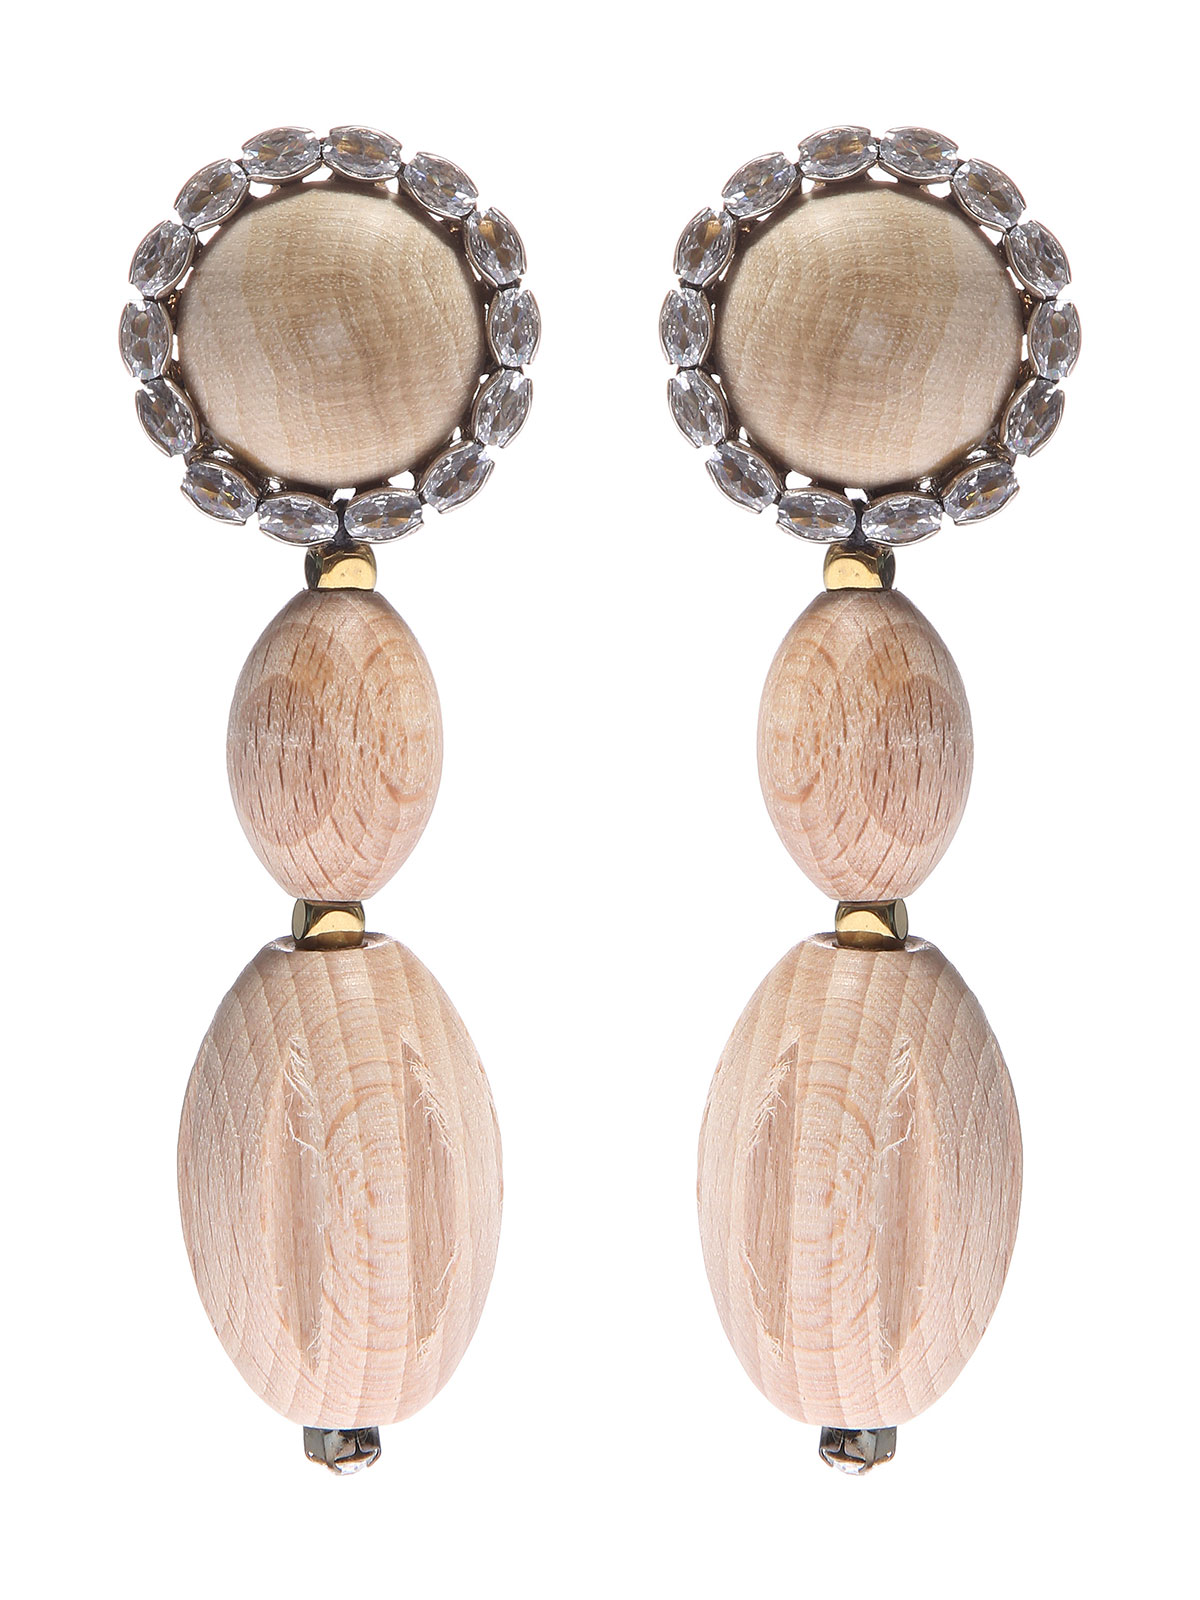 Wood cabochon earrings with crystals and pendent wood elements